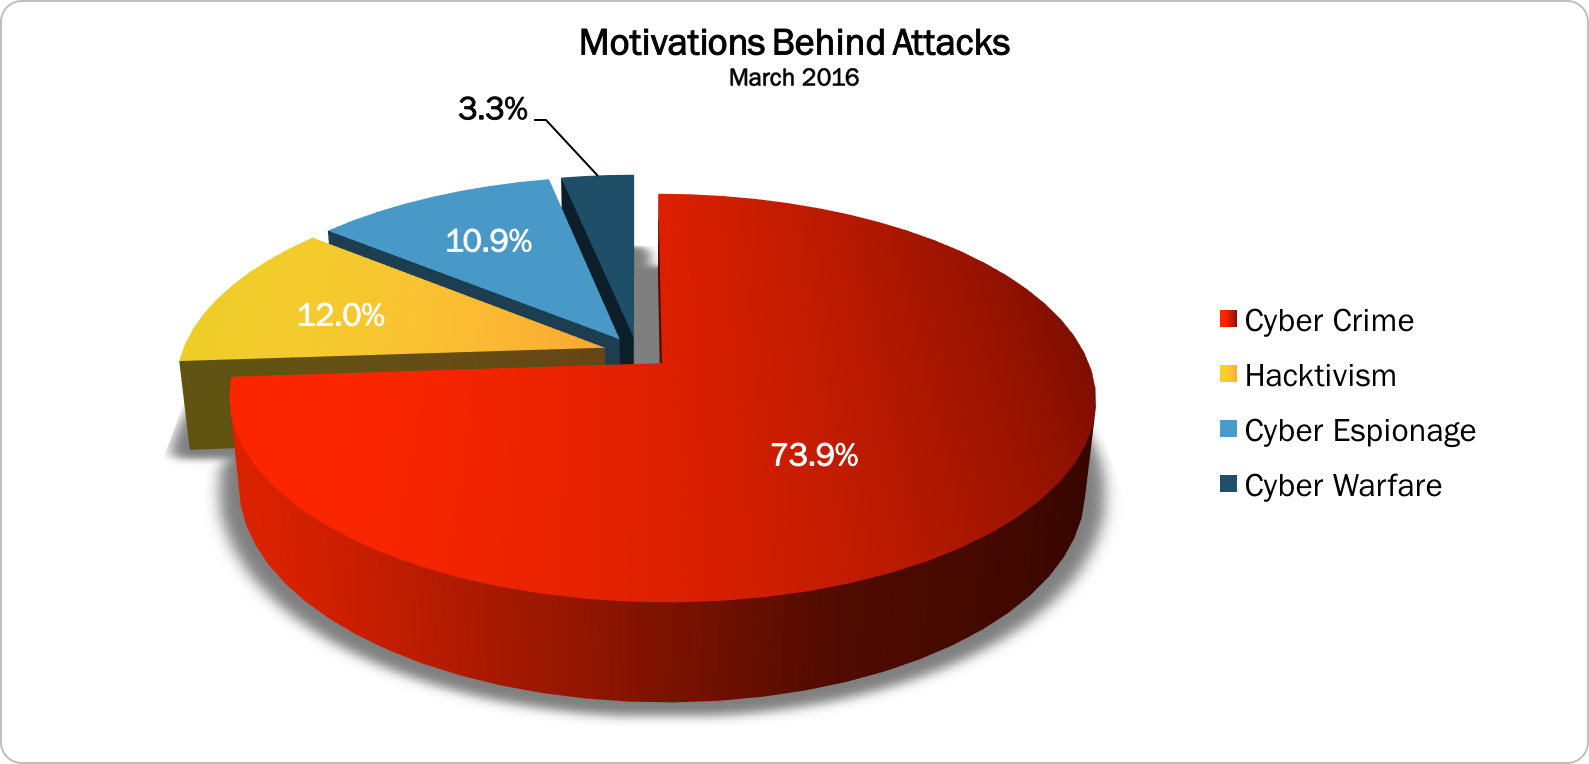 the strategic and tactical motivations behind terrorist acts The strategic and tactical motivations behind terrorist acts pages 2 words 714 view full essay more essays like this: terrorism, terrorist acts, palestine liberation organization, tactical motivations not sure what i'd do without @kibin - alfredo alvarez, student @ miami university.